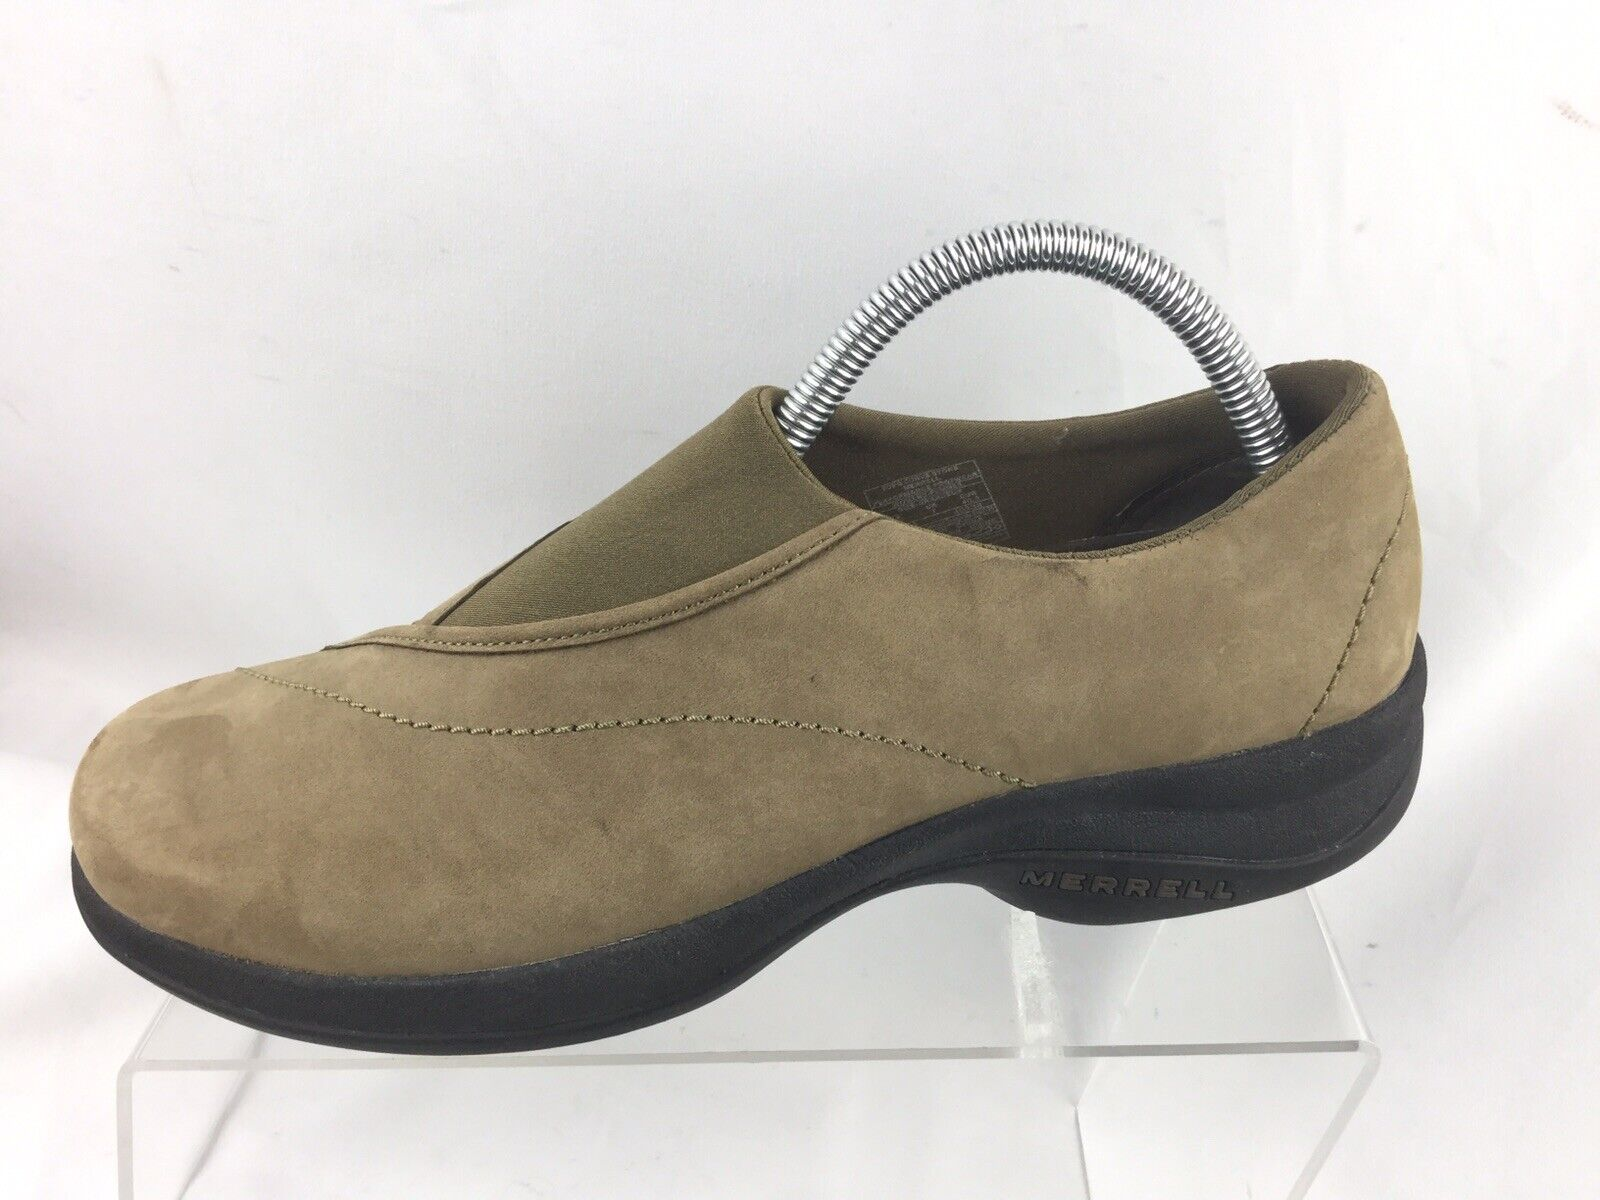 Merrell Topo Curve Tan Slip On Casual Walking Driving Loafers Women's US 9.5